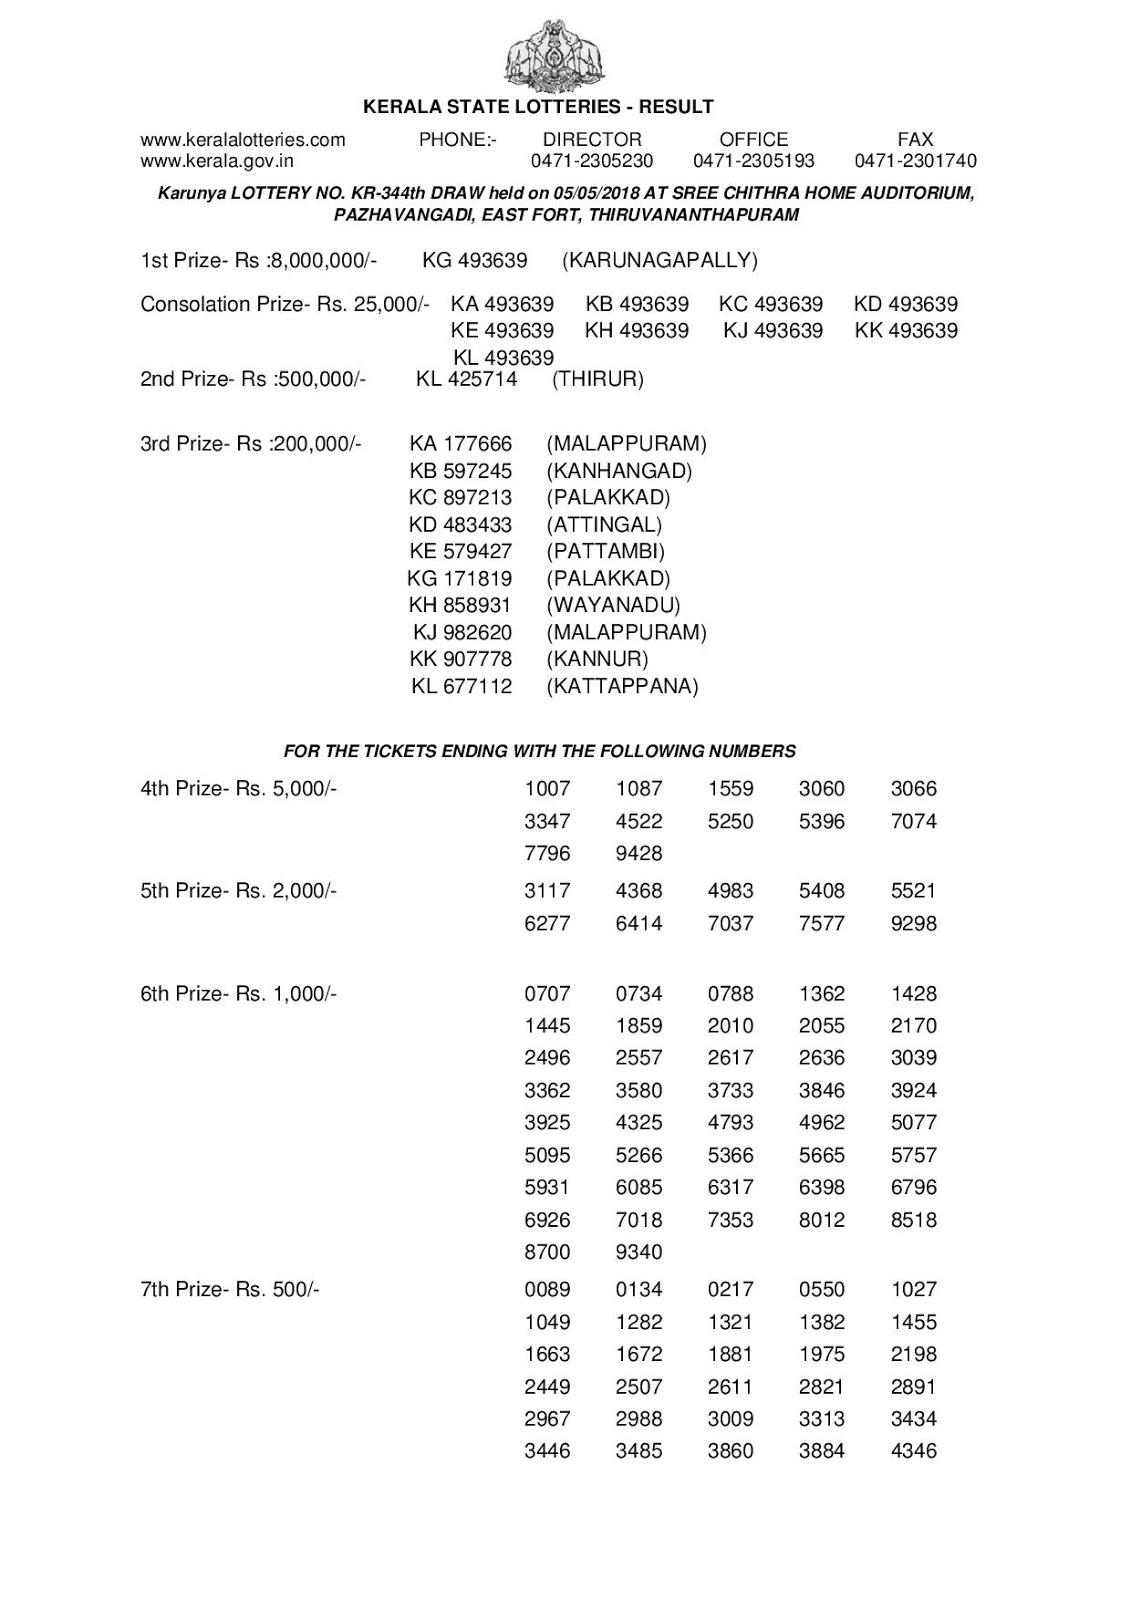 Kerala Lottery Results Today 05.05.2018 Karunya KR-344 Lottery Results Official PDF